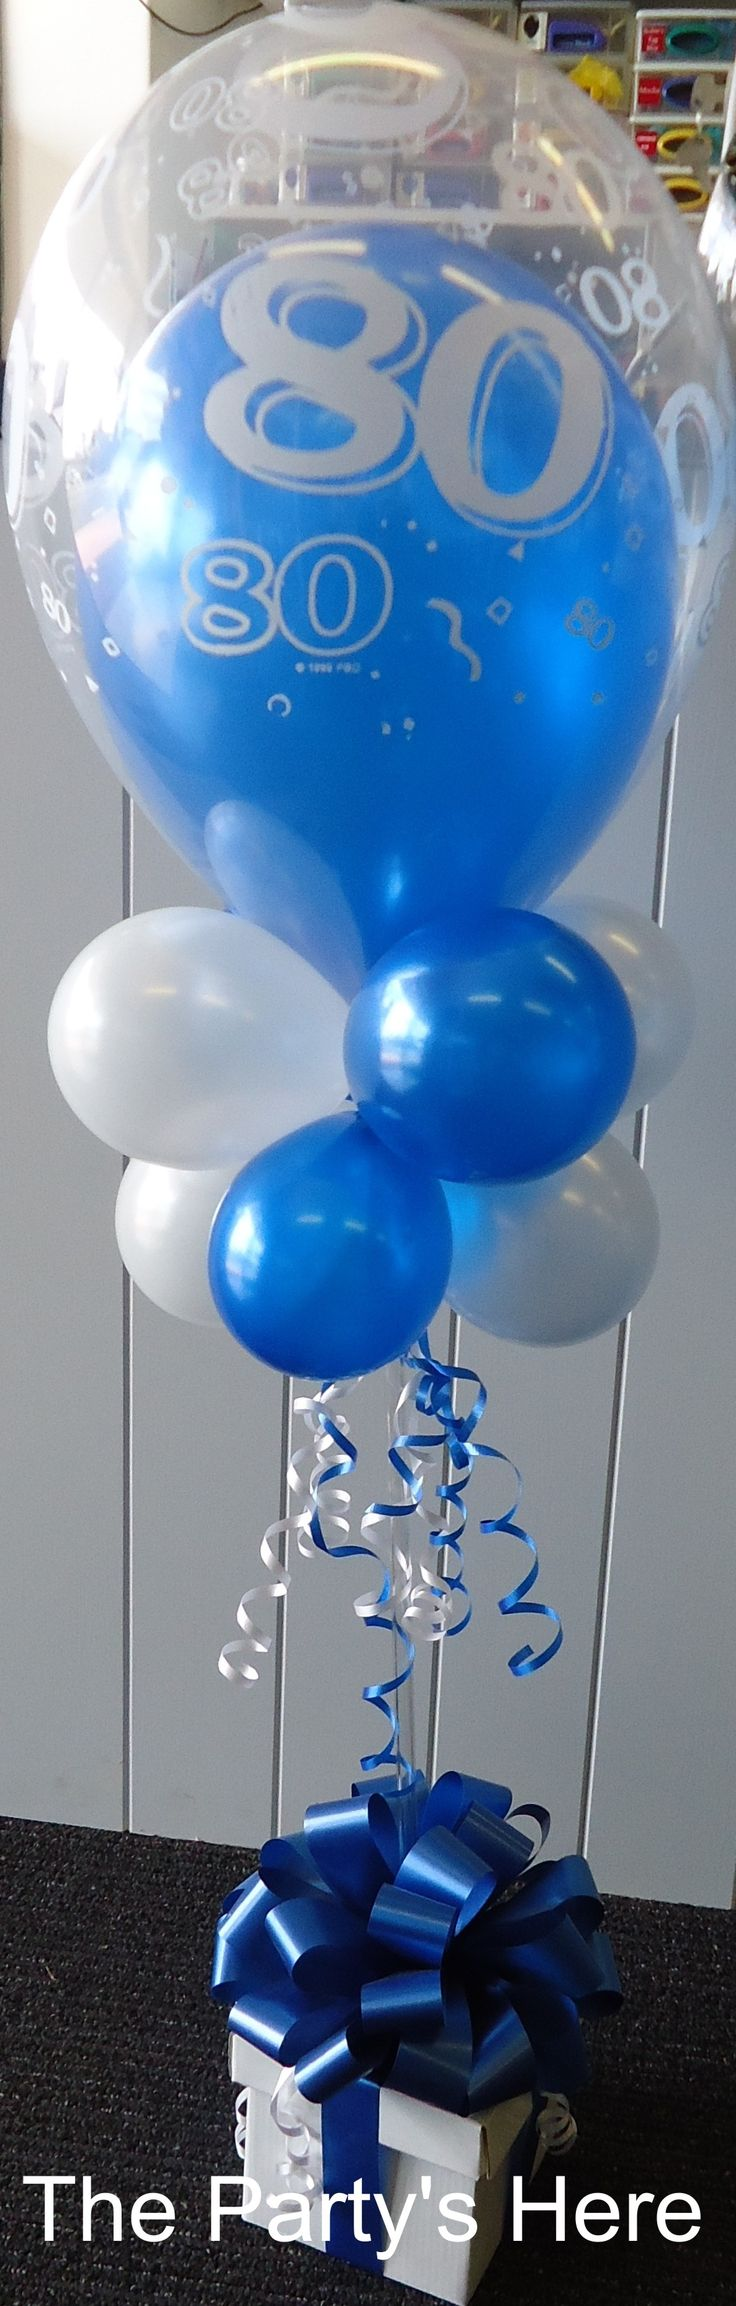 118 best birthdays images on pinterest birthdays for Air filled balloon decoration ideas